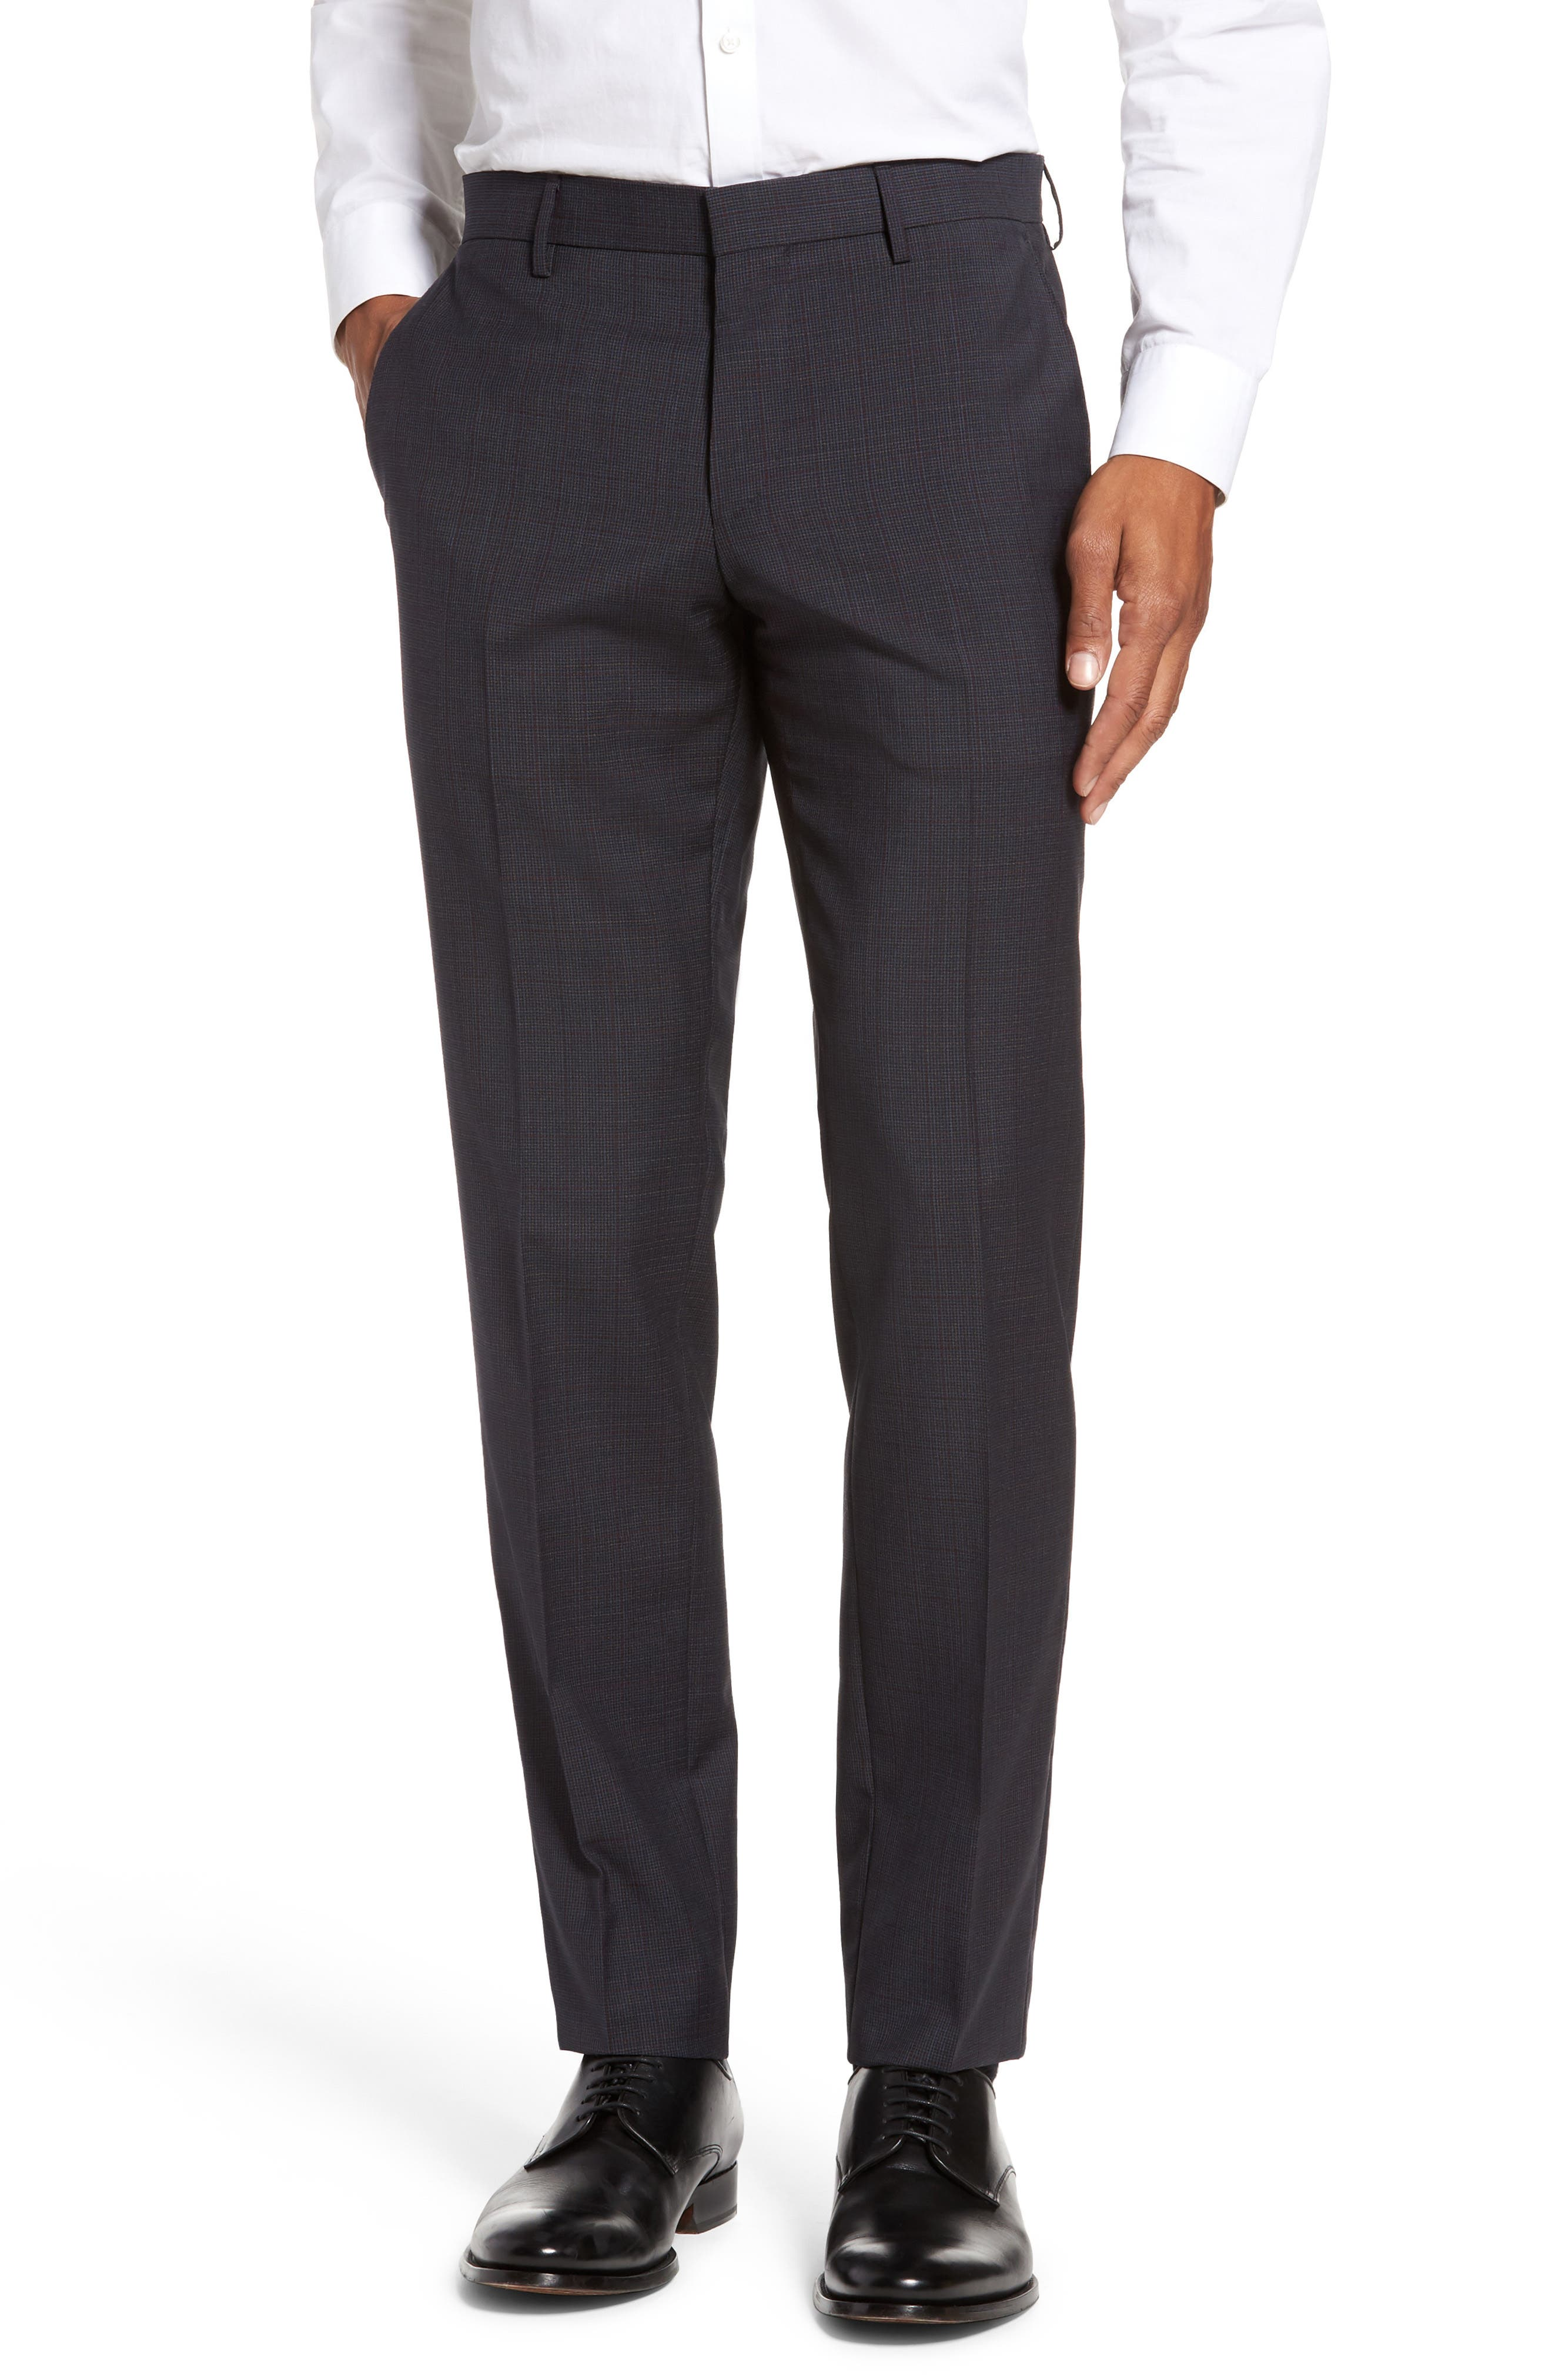 Benso Flat Front Houndstooth Wool Trousers,                             Main thumbnail 1, color,                             410